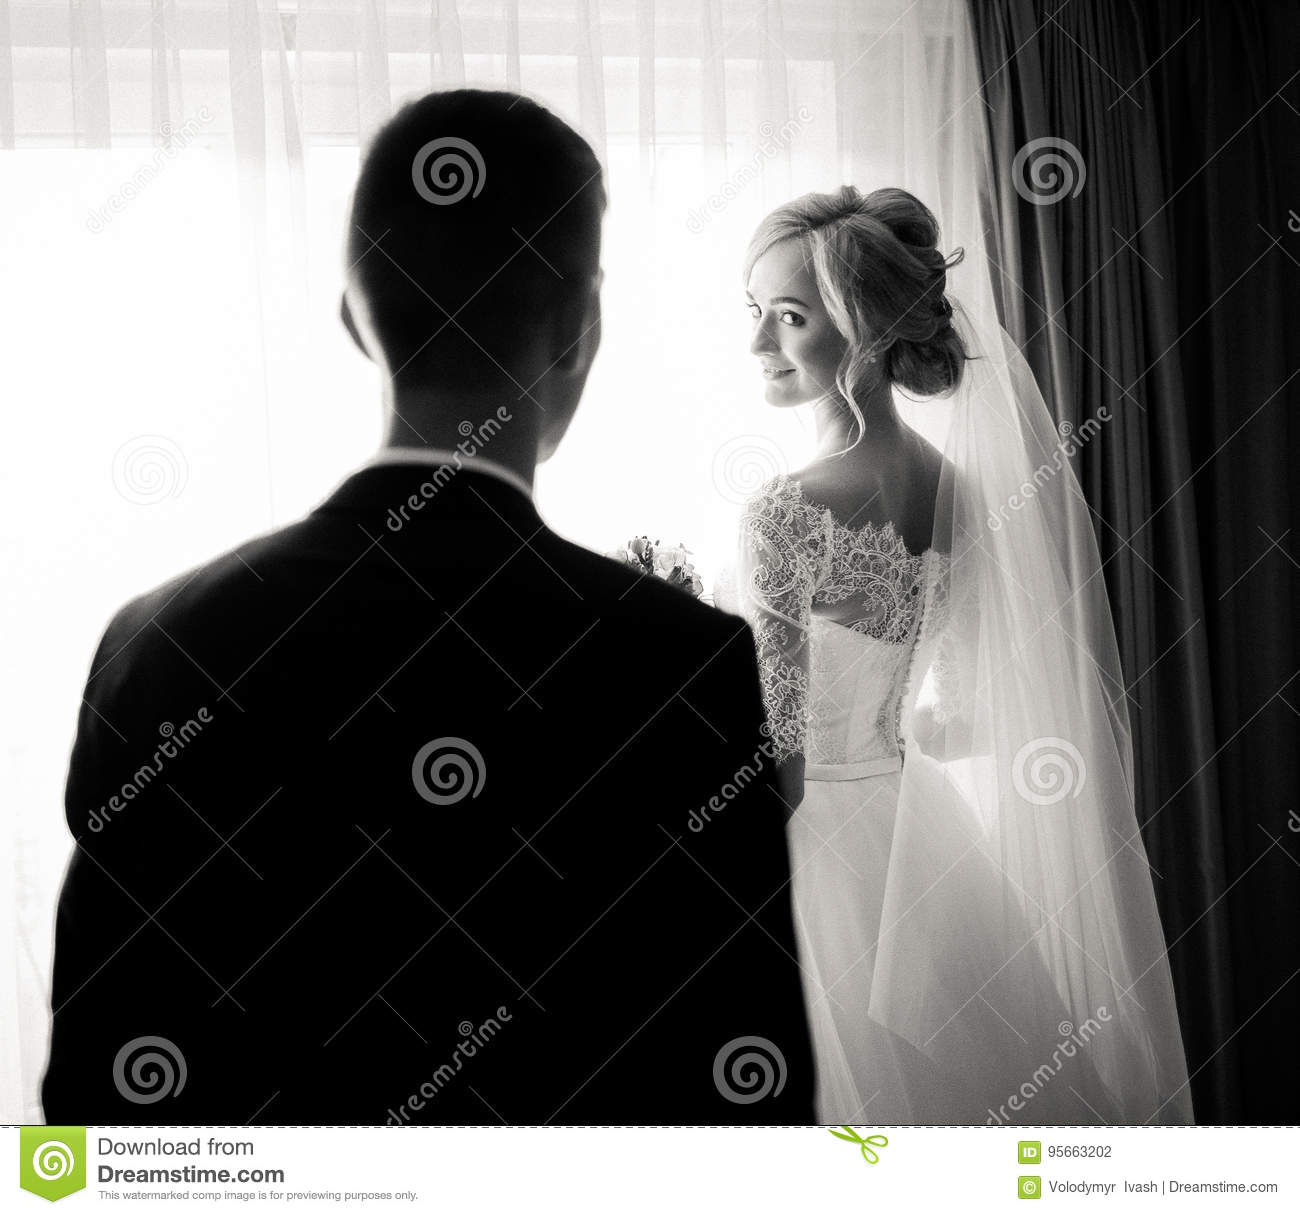 Charming blonde bride looks over her shoulder at groom